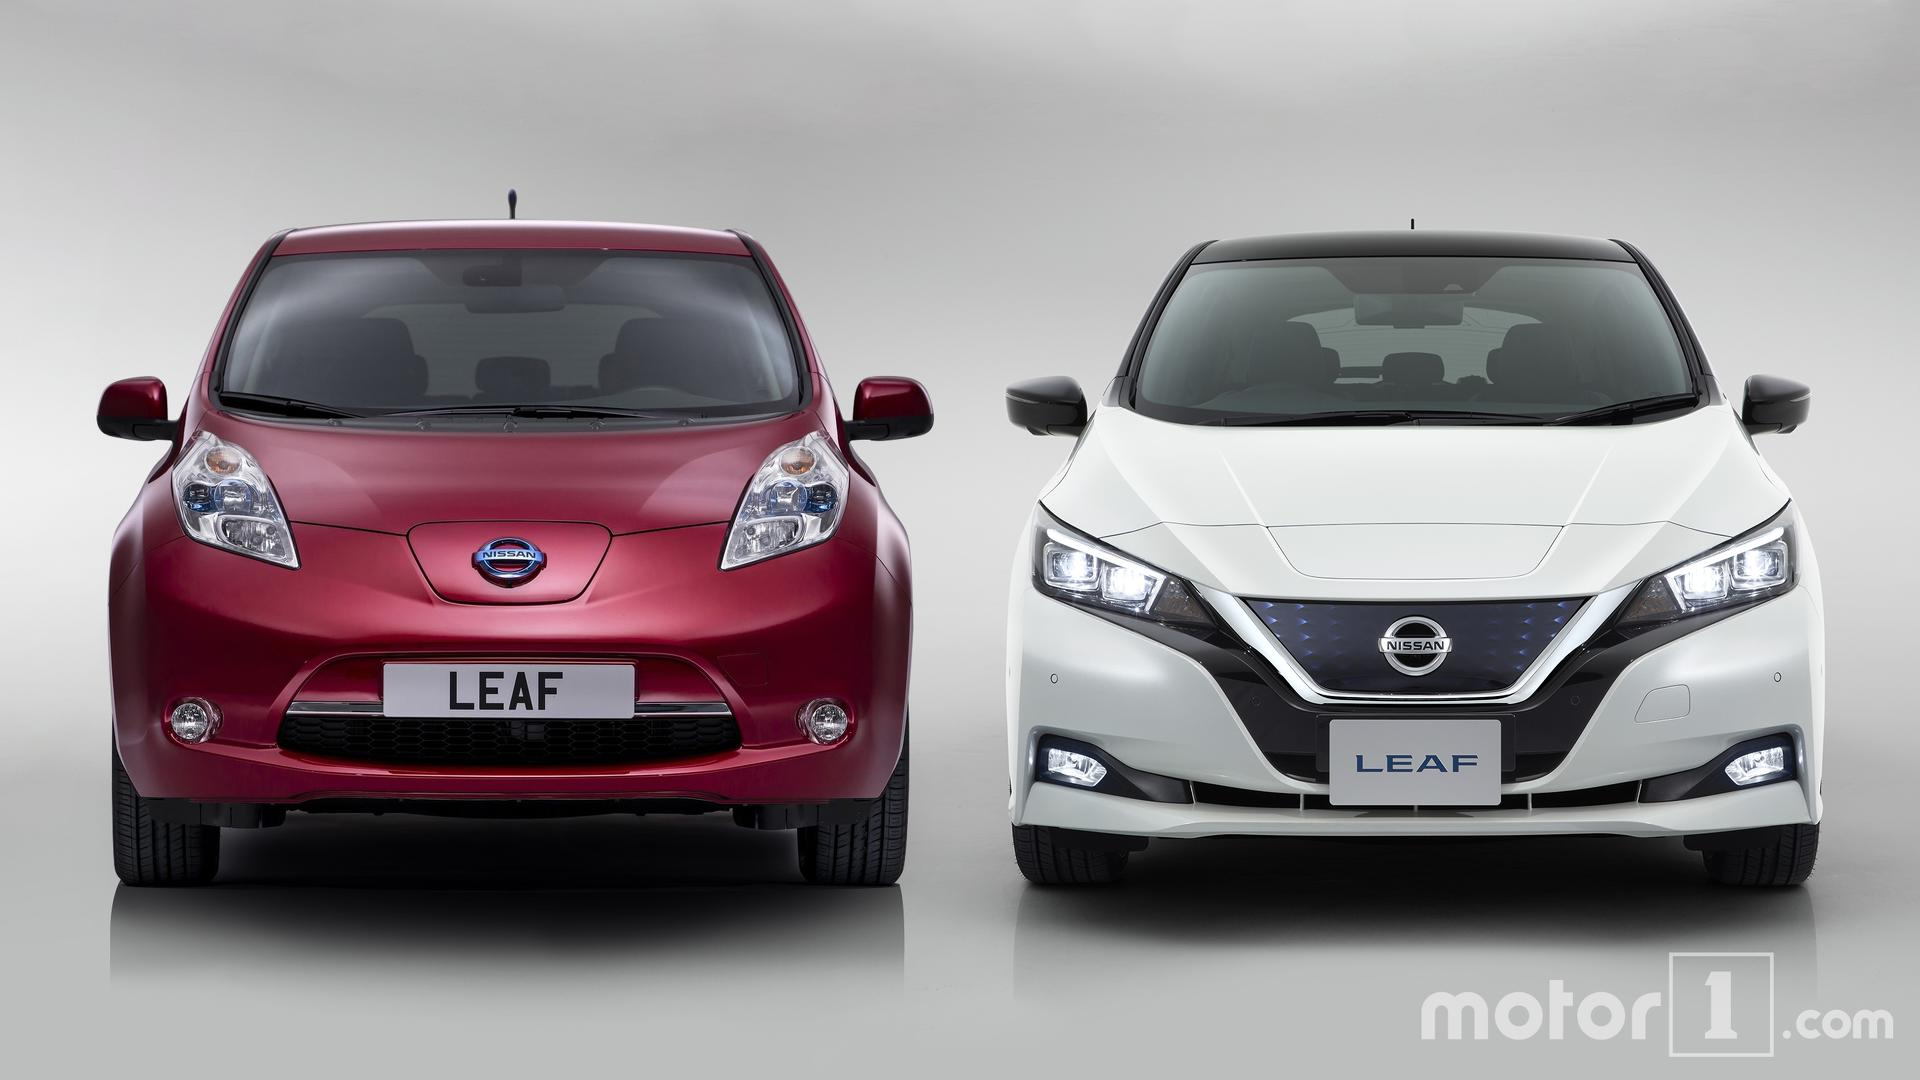 the leads offers engine car of up a that emission in uk zero cheaper running conventional taxi also and costs its four nissan for combustion electric to world leaf benefits than times addition sales